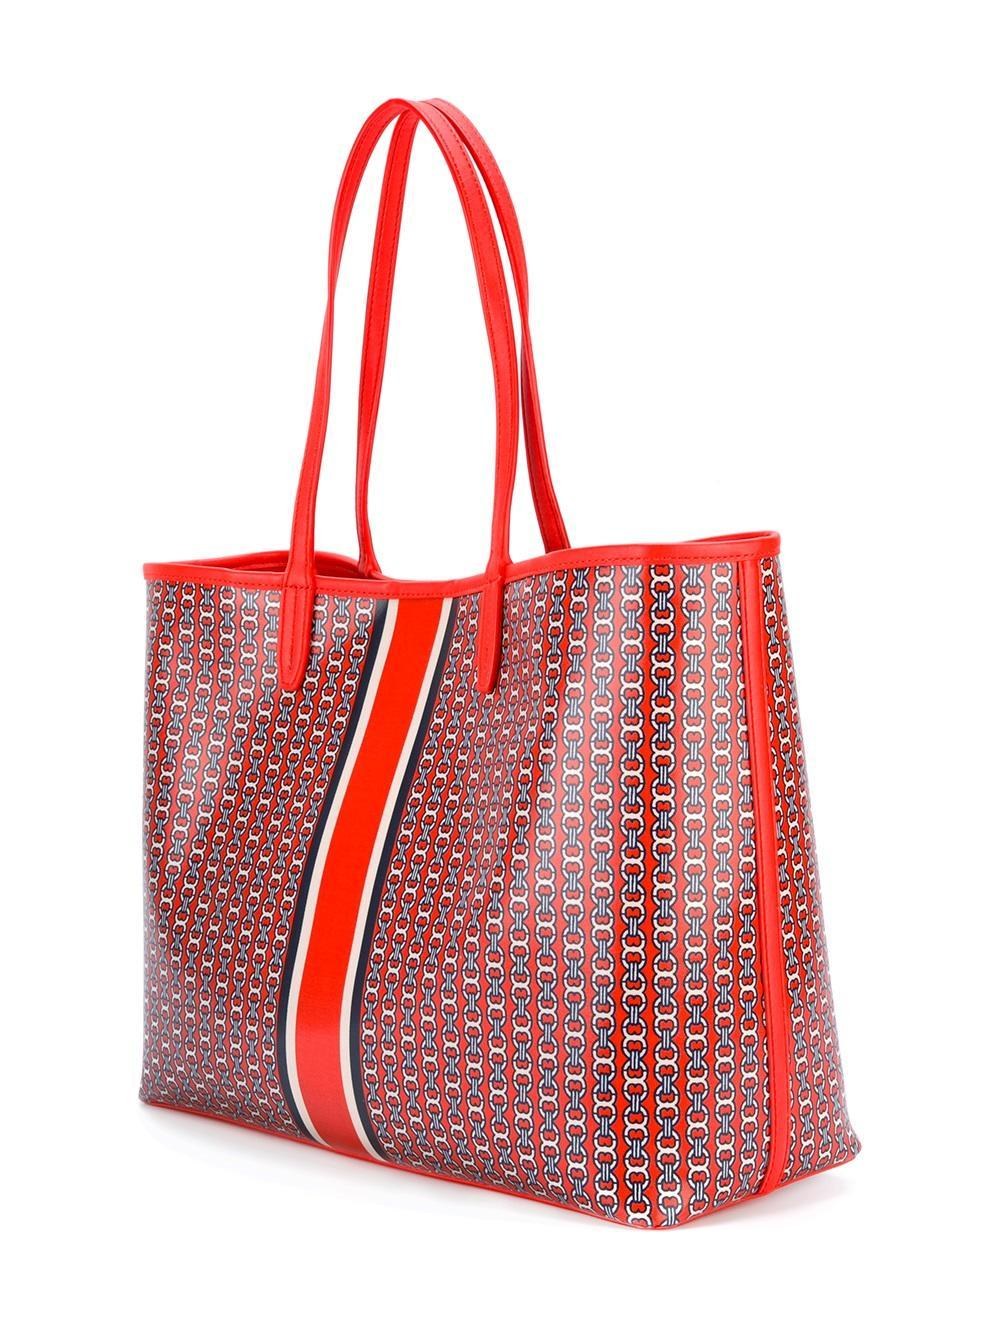 Lyst Tory Burch Large Chain Print Tote Bag In Red